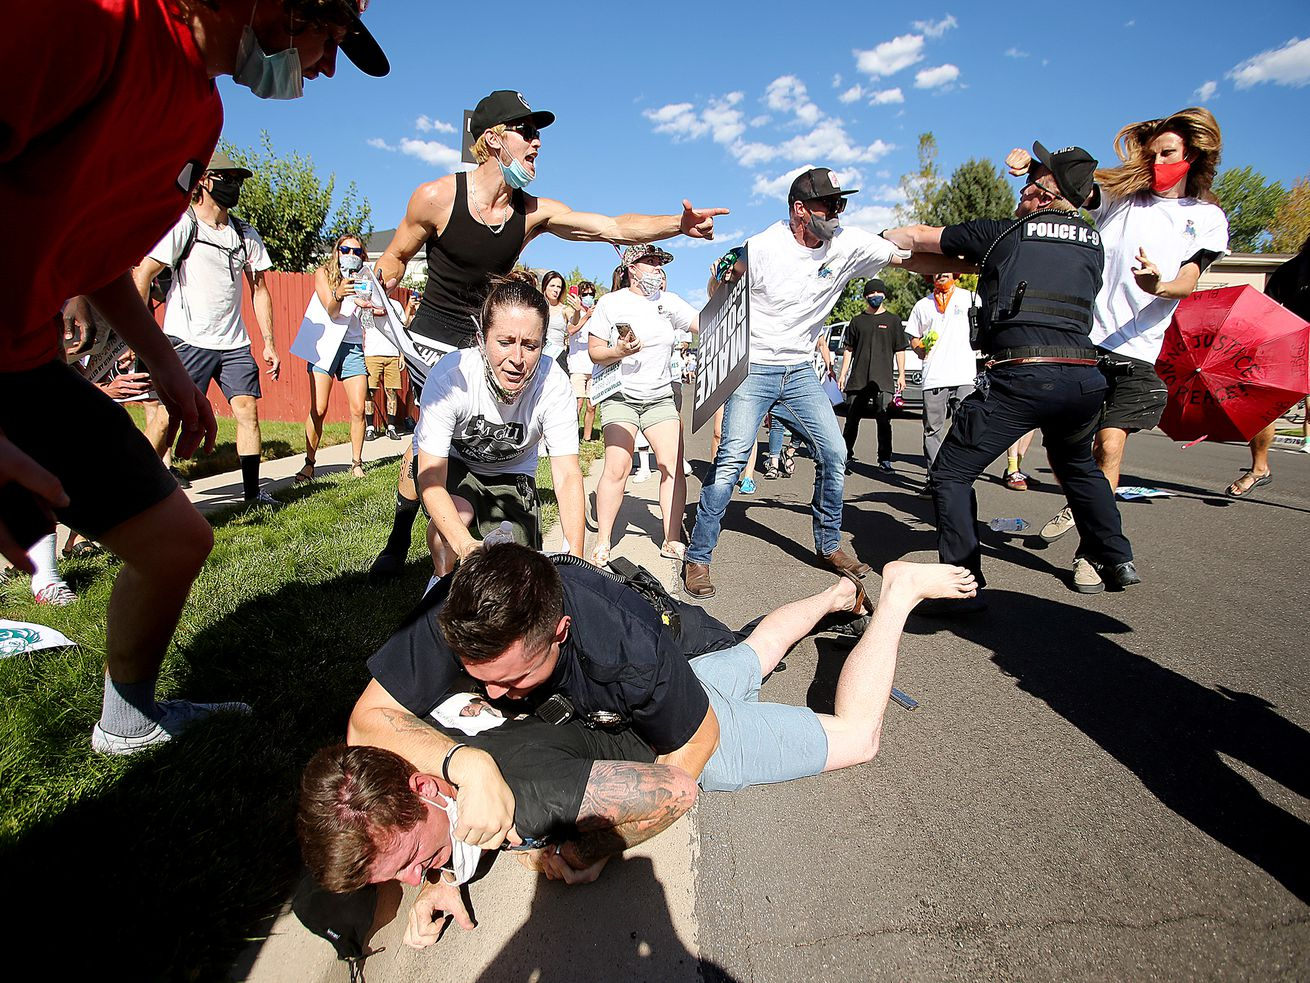 Protesters arrested in clash with Cottonwood Heights police